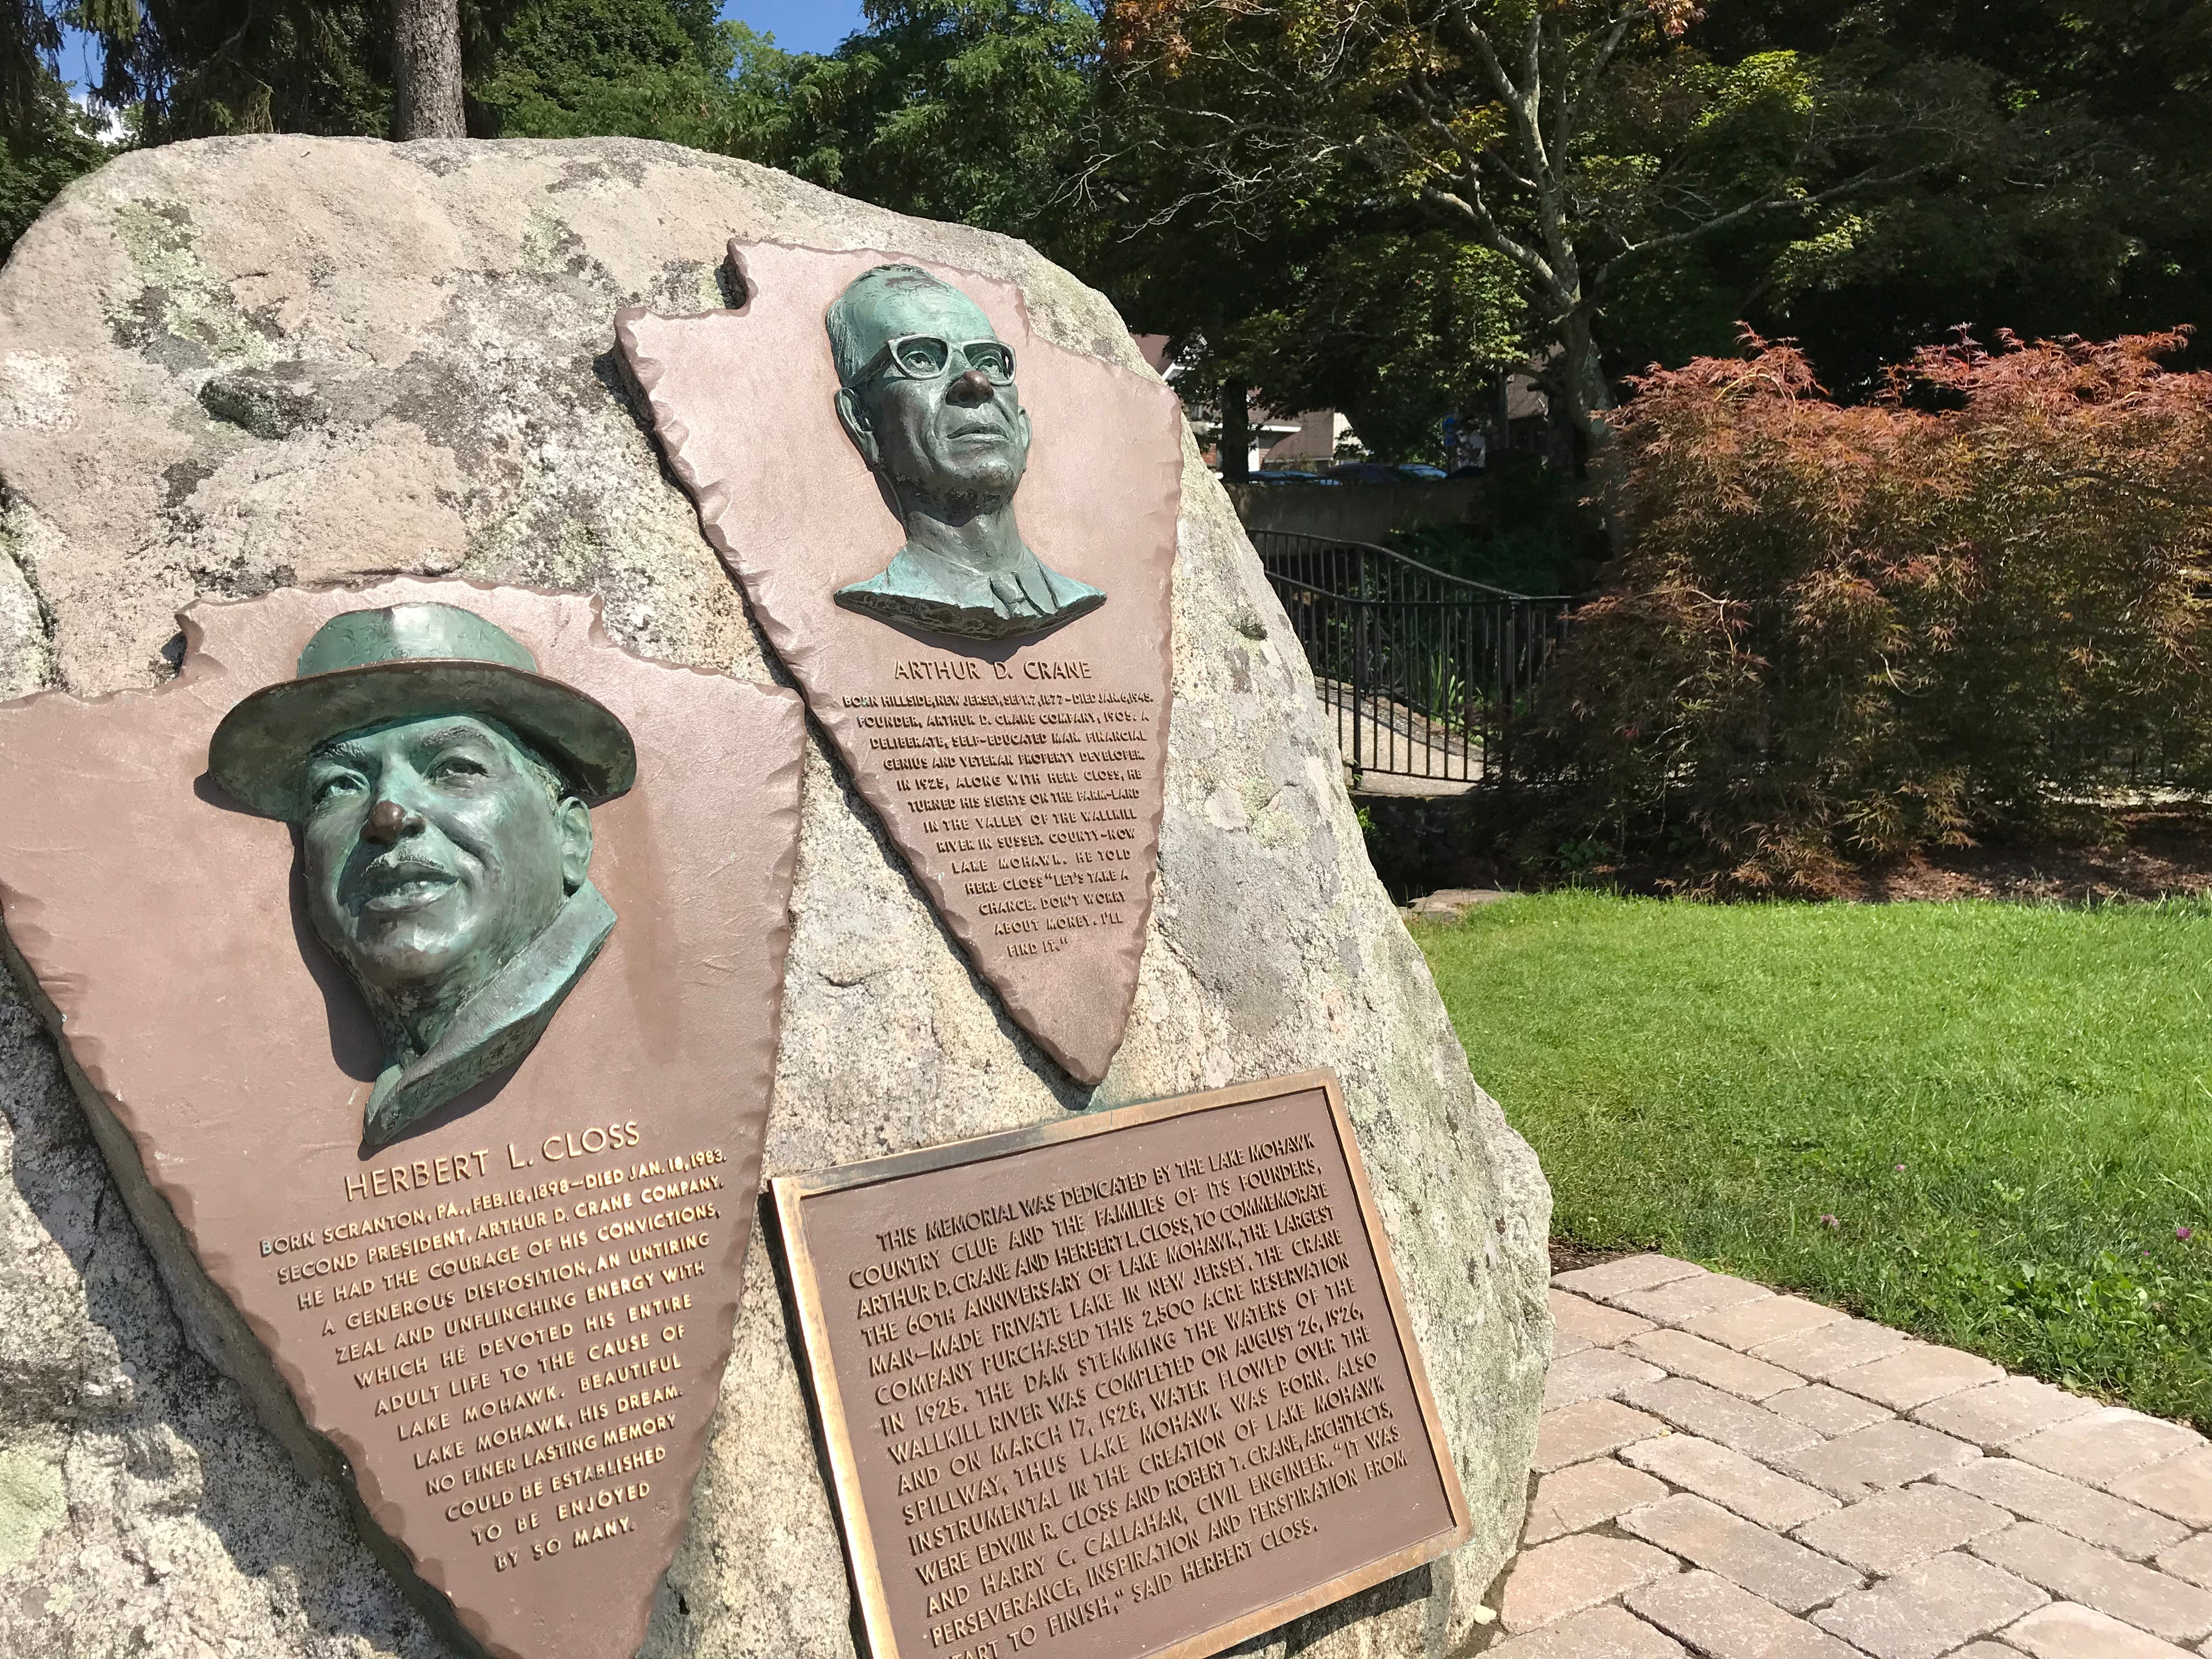 A stone with a trio of plaques near the shore of Lake Mohawk in Sparta, N.J. on July 26, 2018, honors the lake community's developers Arthur Crane and Herbert Closs.